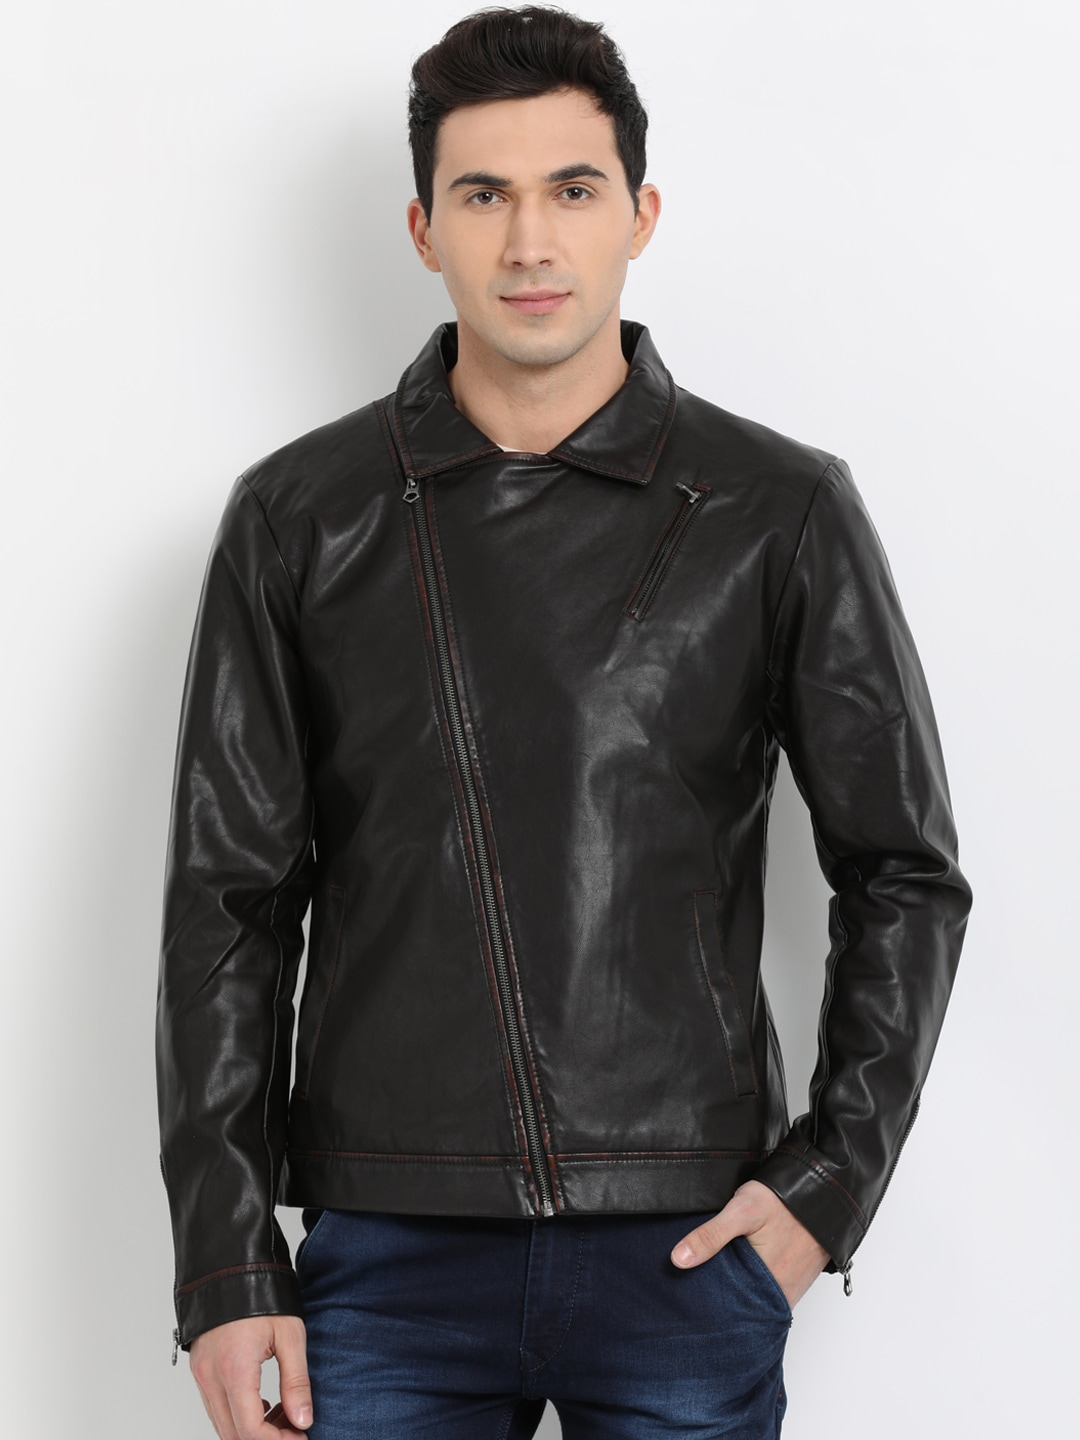 T Base Jackets Buy T Base Jacket At Best Price Online Myntra